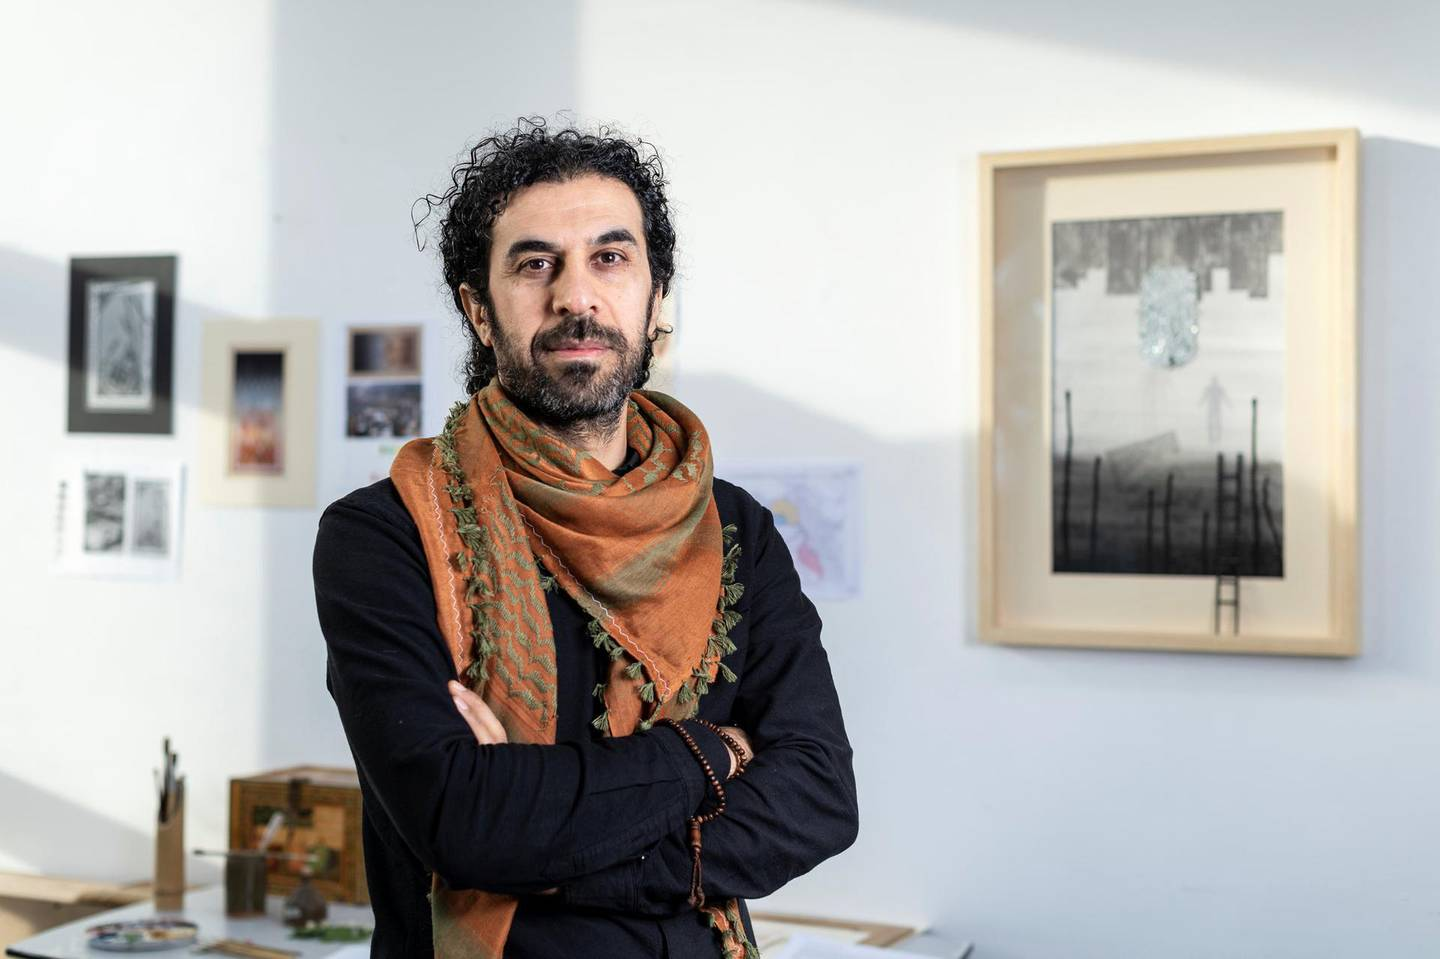 Portrait of Shorsh Saleh in his studio in South London. IWM has commissioned Shorsh to create artwork for it's upcoming Refugee exhibition season, running in 2020.Photographed 16th January 2020.